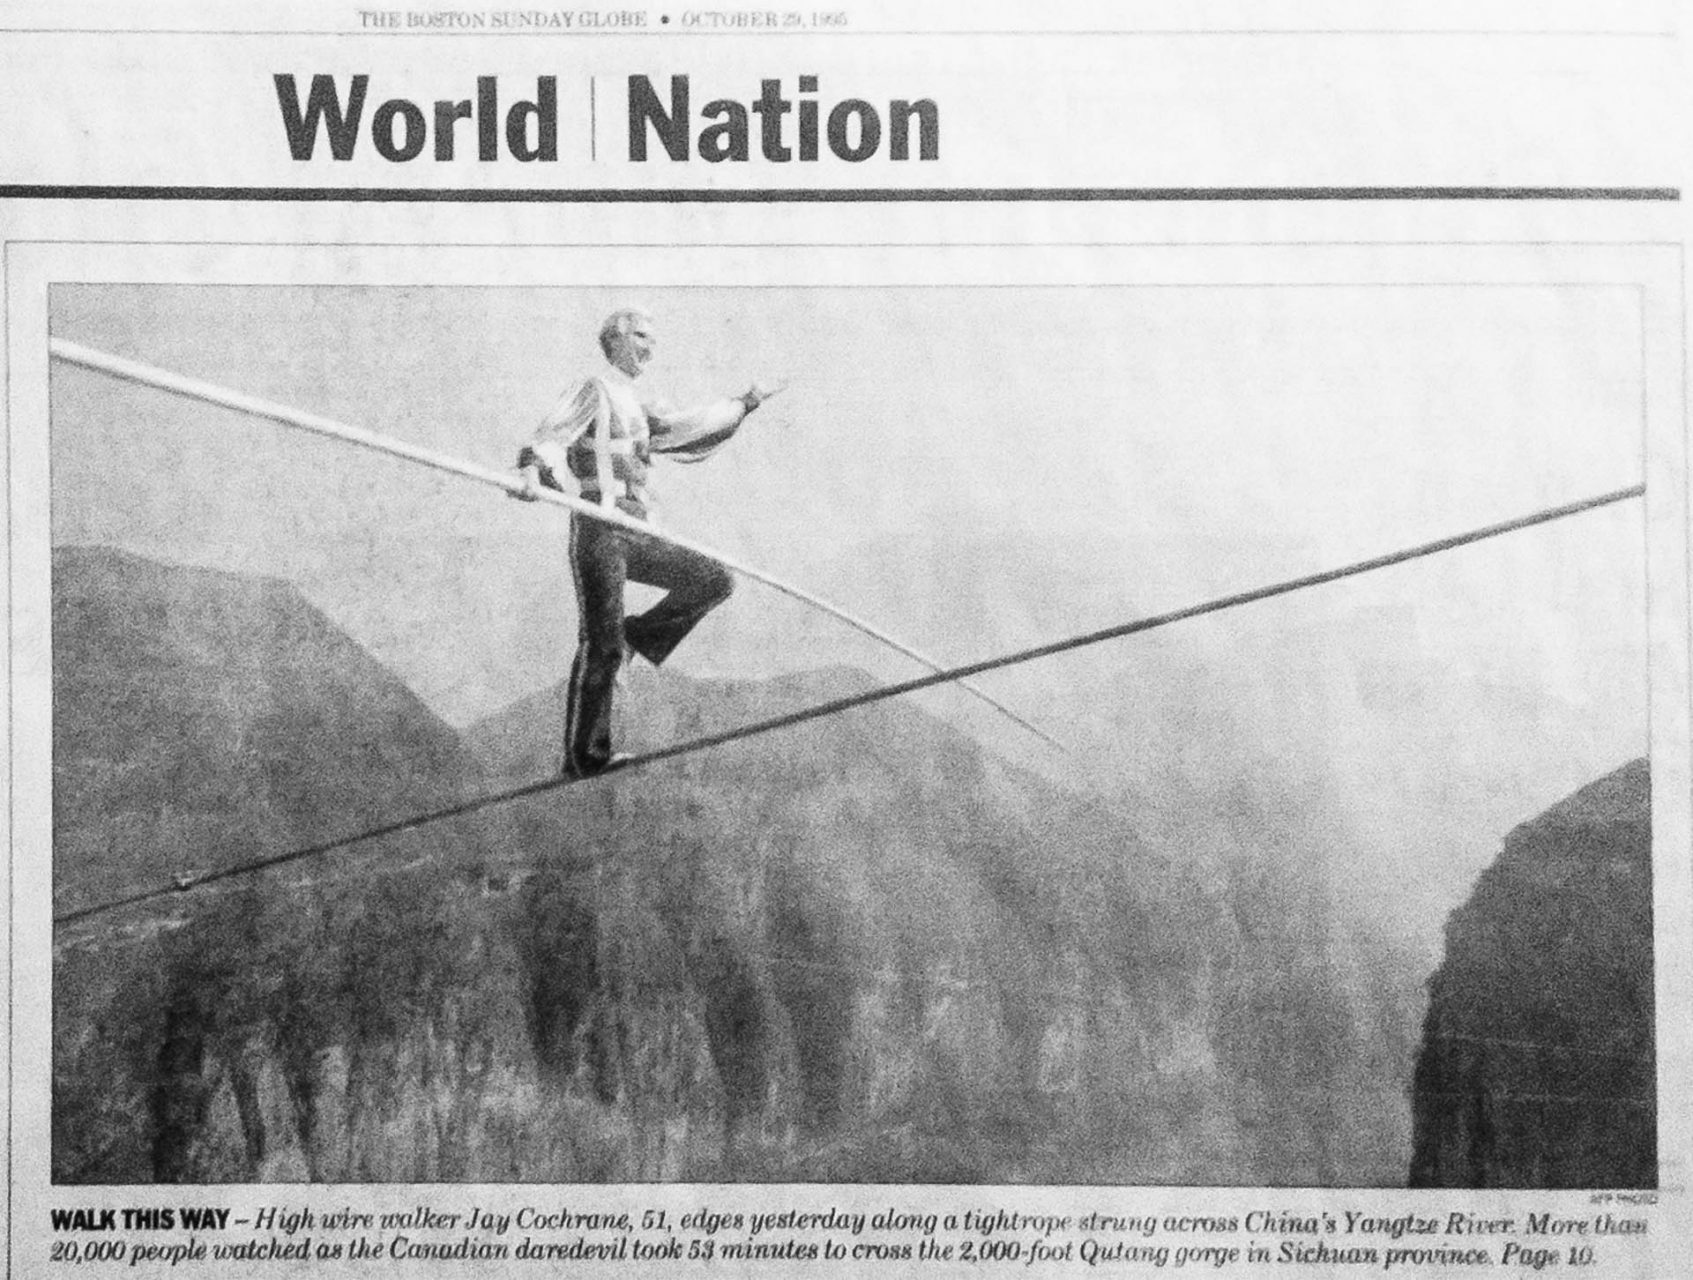 "Jay Cochrane, ""The Prince of the Air"", published in the Boston Globe on October 29, 1995, day after The Great China Skywalk over the Yangtze River in Qutang Gorge, China, on October 28, 1995. The skywalk was and is the greatest ever made spanning half a mile between the canyon walls and 1,350 feet above the river. ©Mark D Phillips"